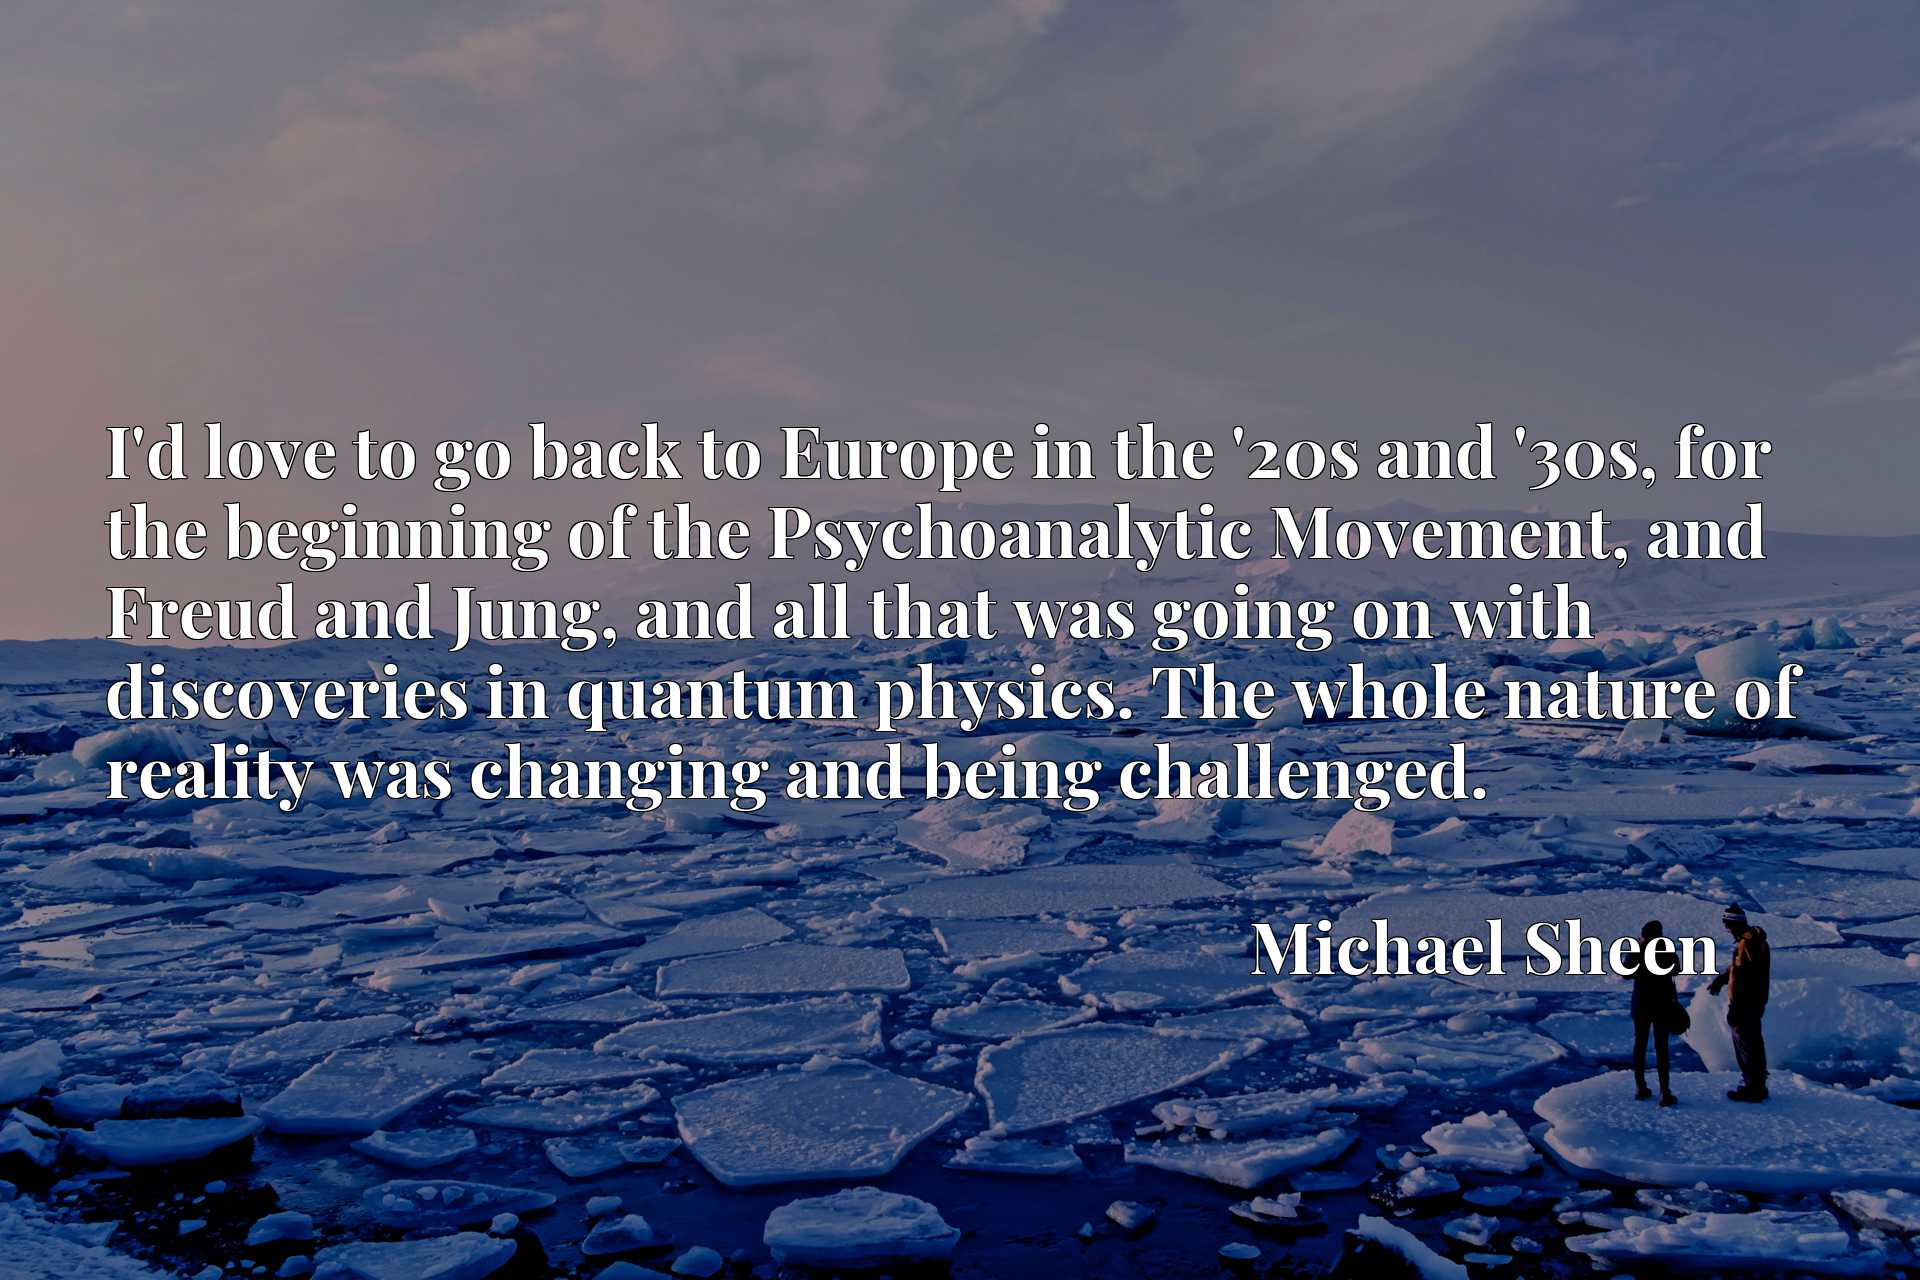 Quote Picture :I'd love to go back to Europe in the '20s and '30s, for the beginning of the Psychoanalytic Movement, and Freud and Jung, and all that was going on with discoveries in quantum physics. The whole nature of reality was changing and being challenged.